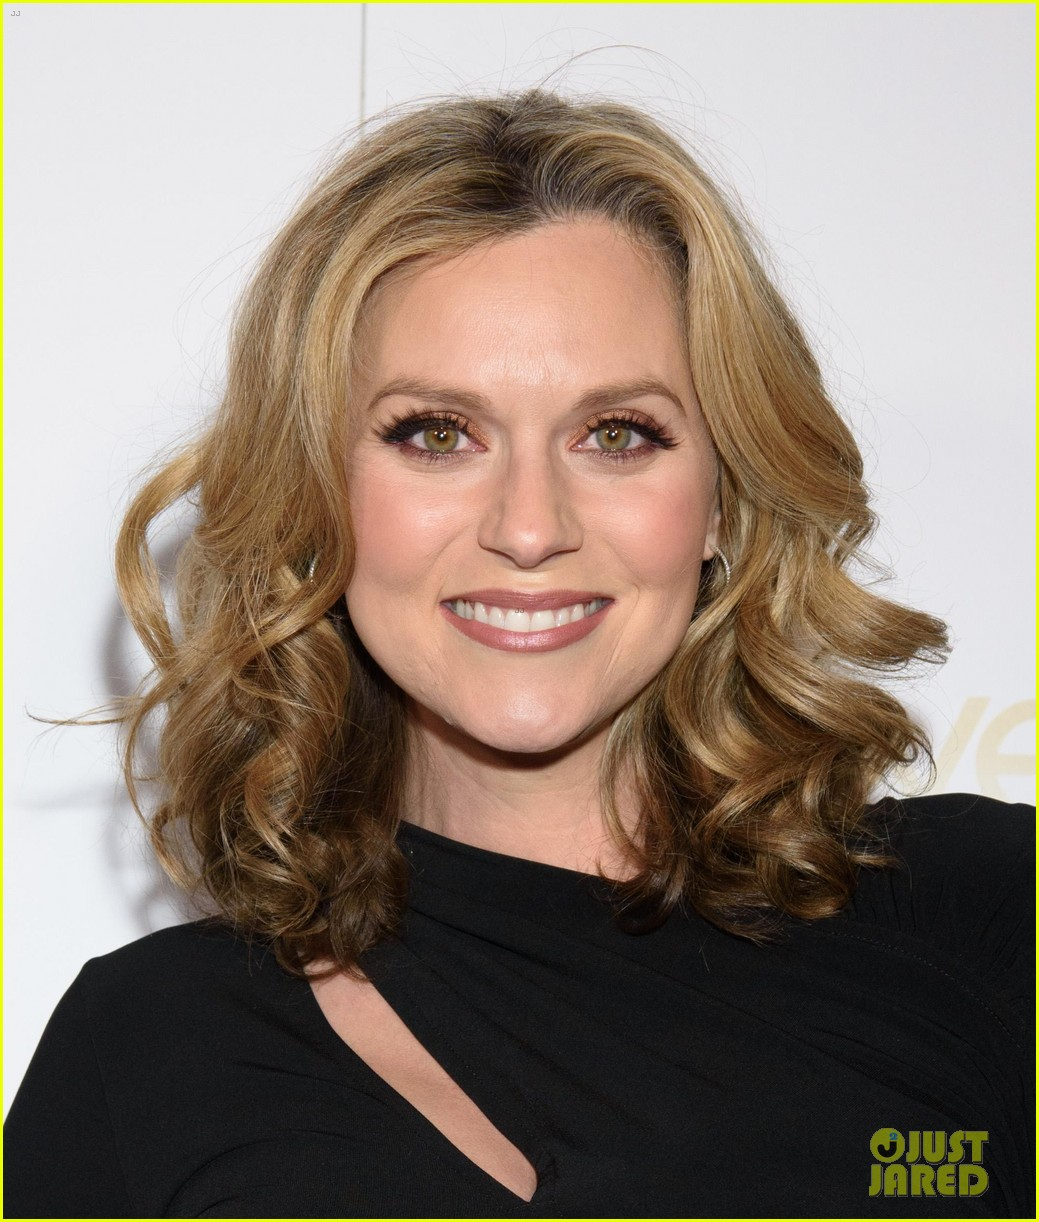 Pregnant Hilarie Burton Glows at 'Moves' Power Women Gala ... Hilarie Burton